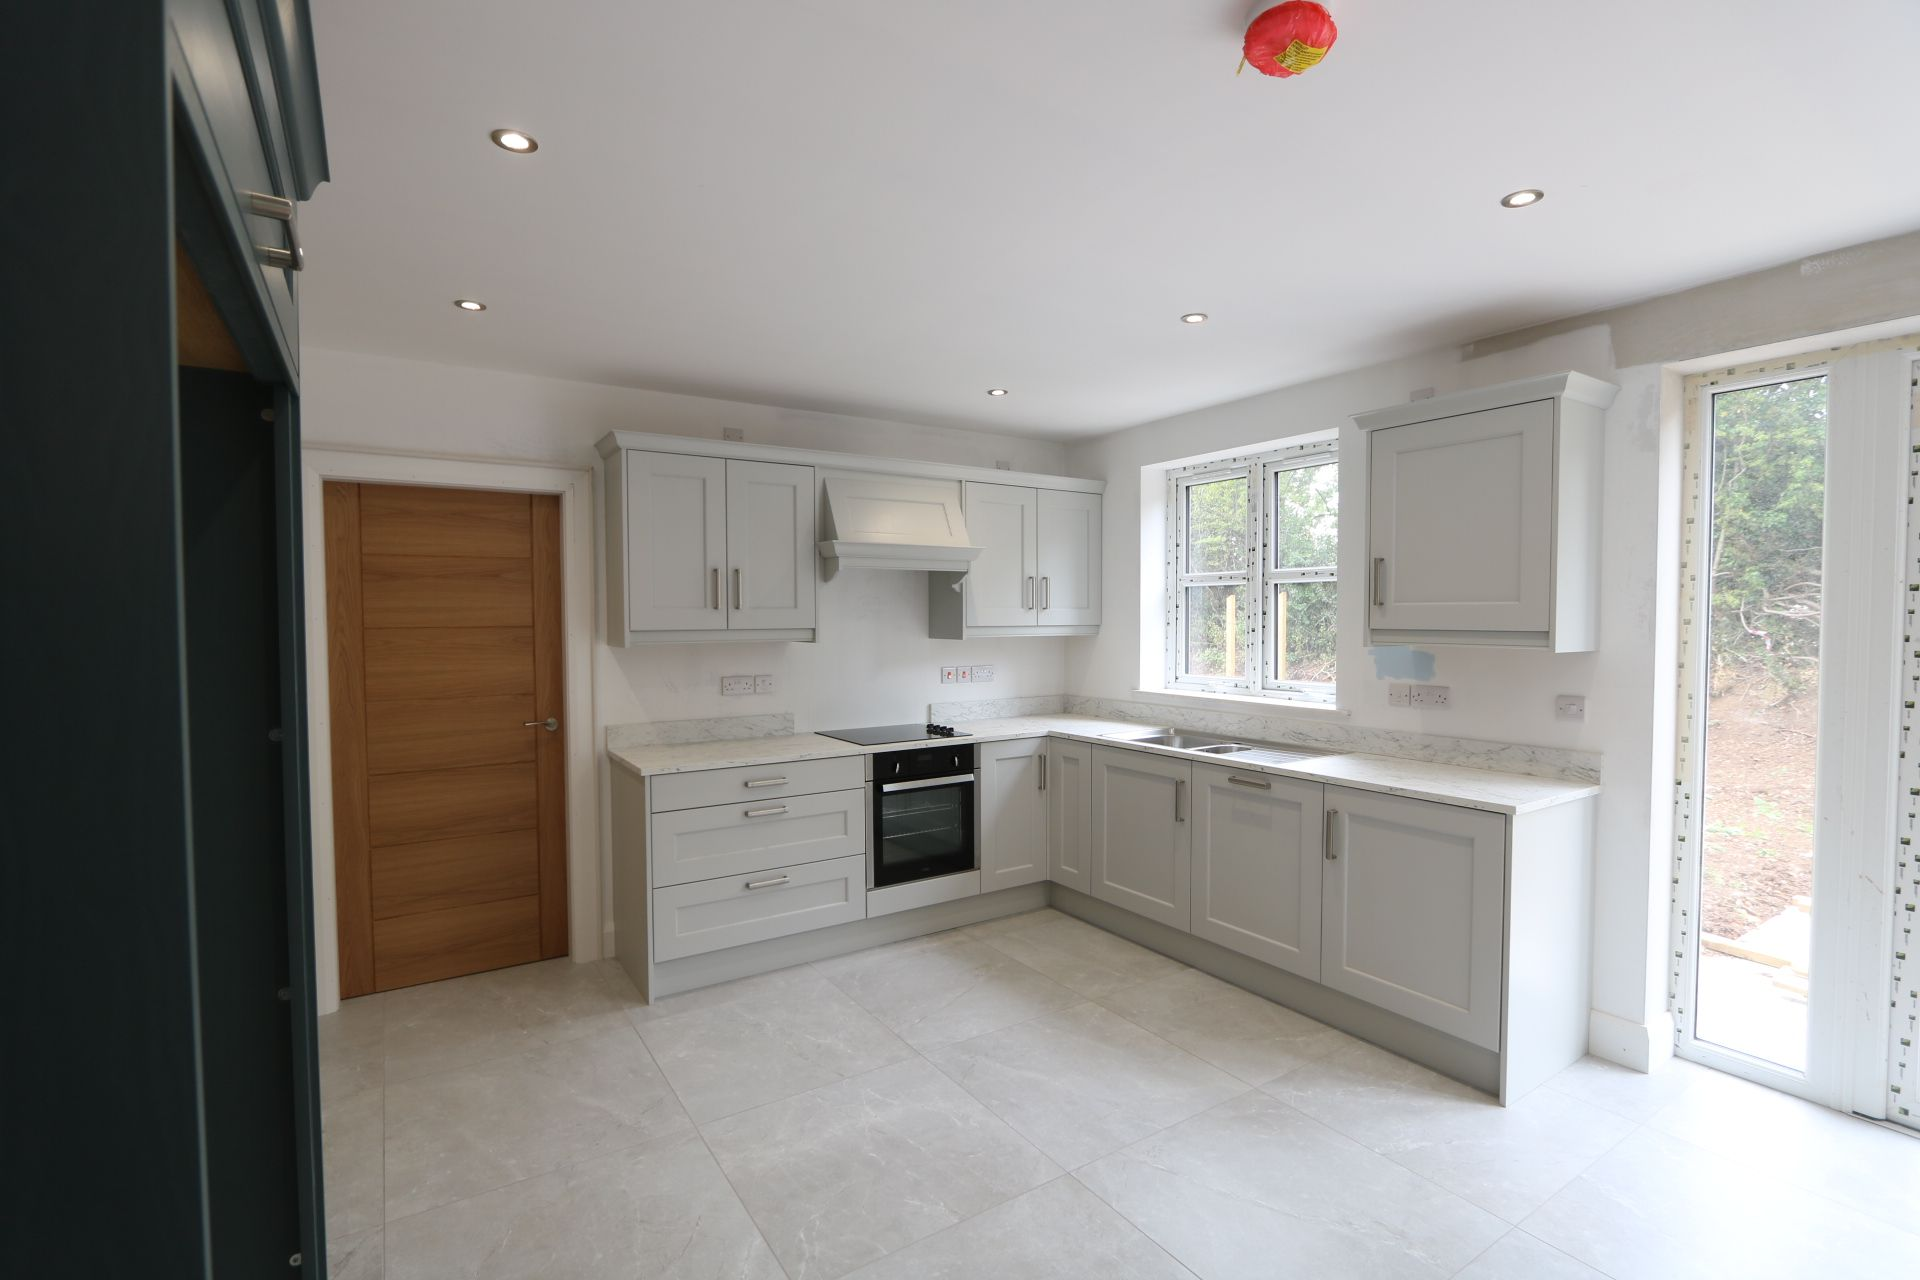 4 bedroom detached house For Sale in Antrim - Photograph 5